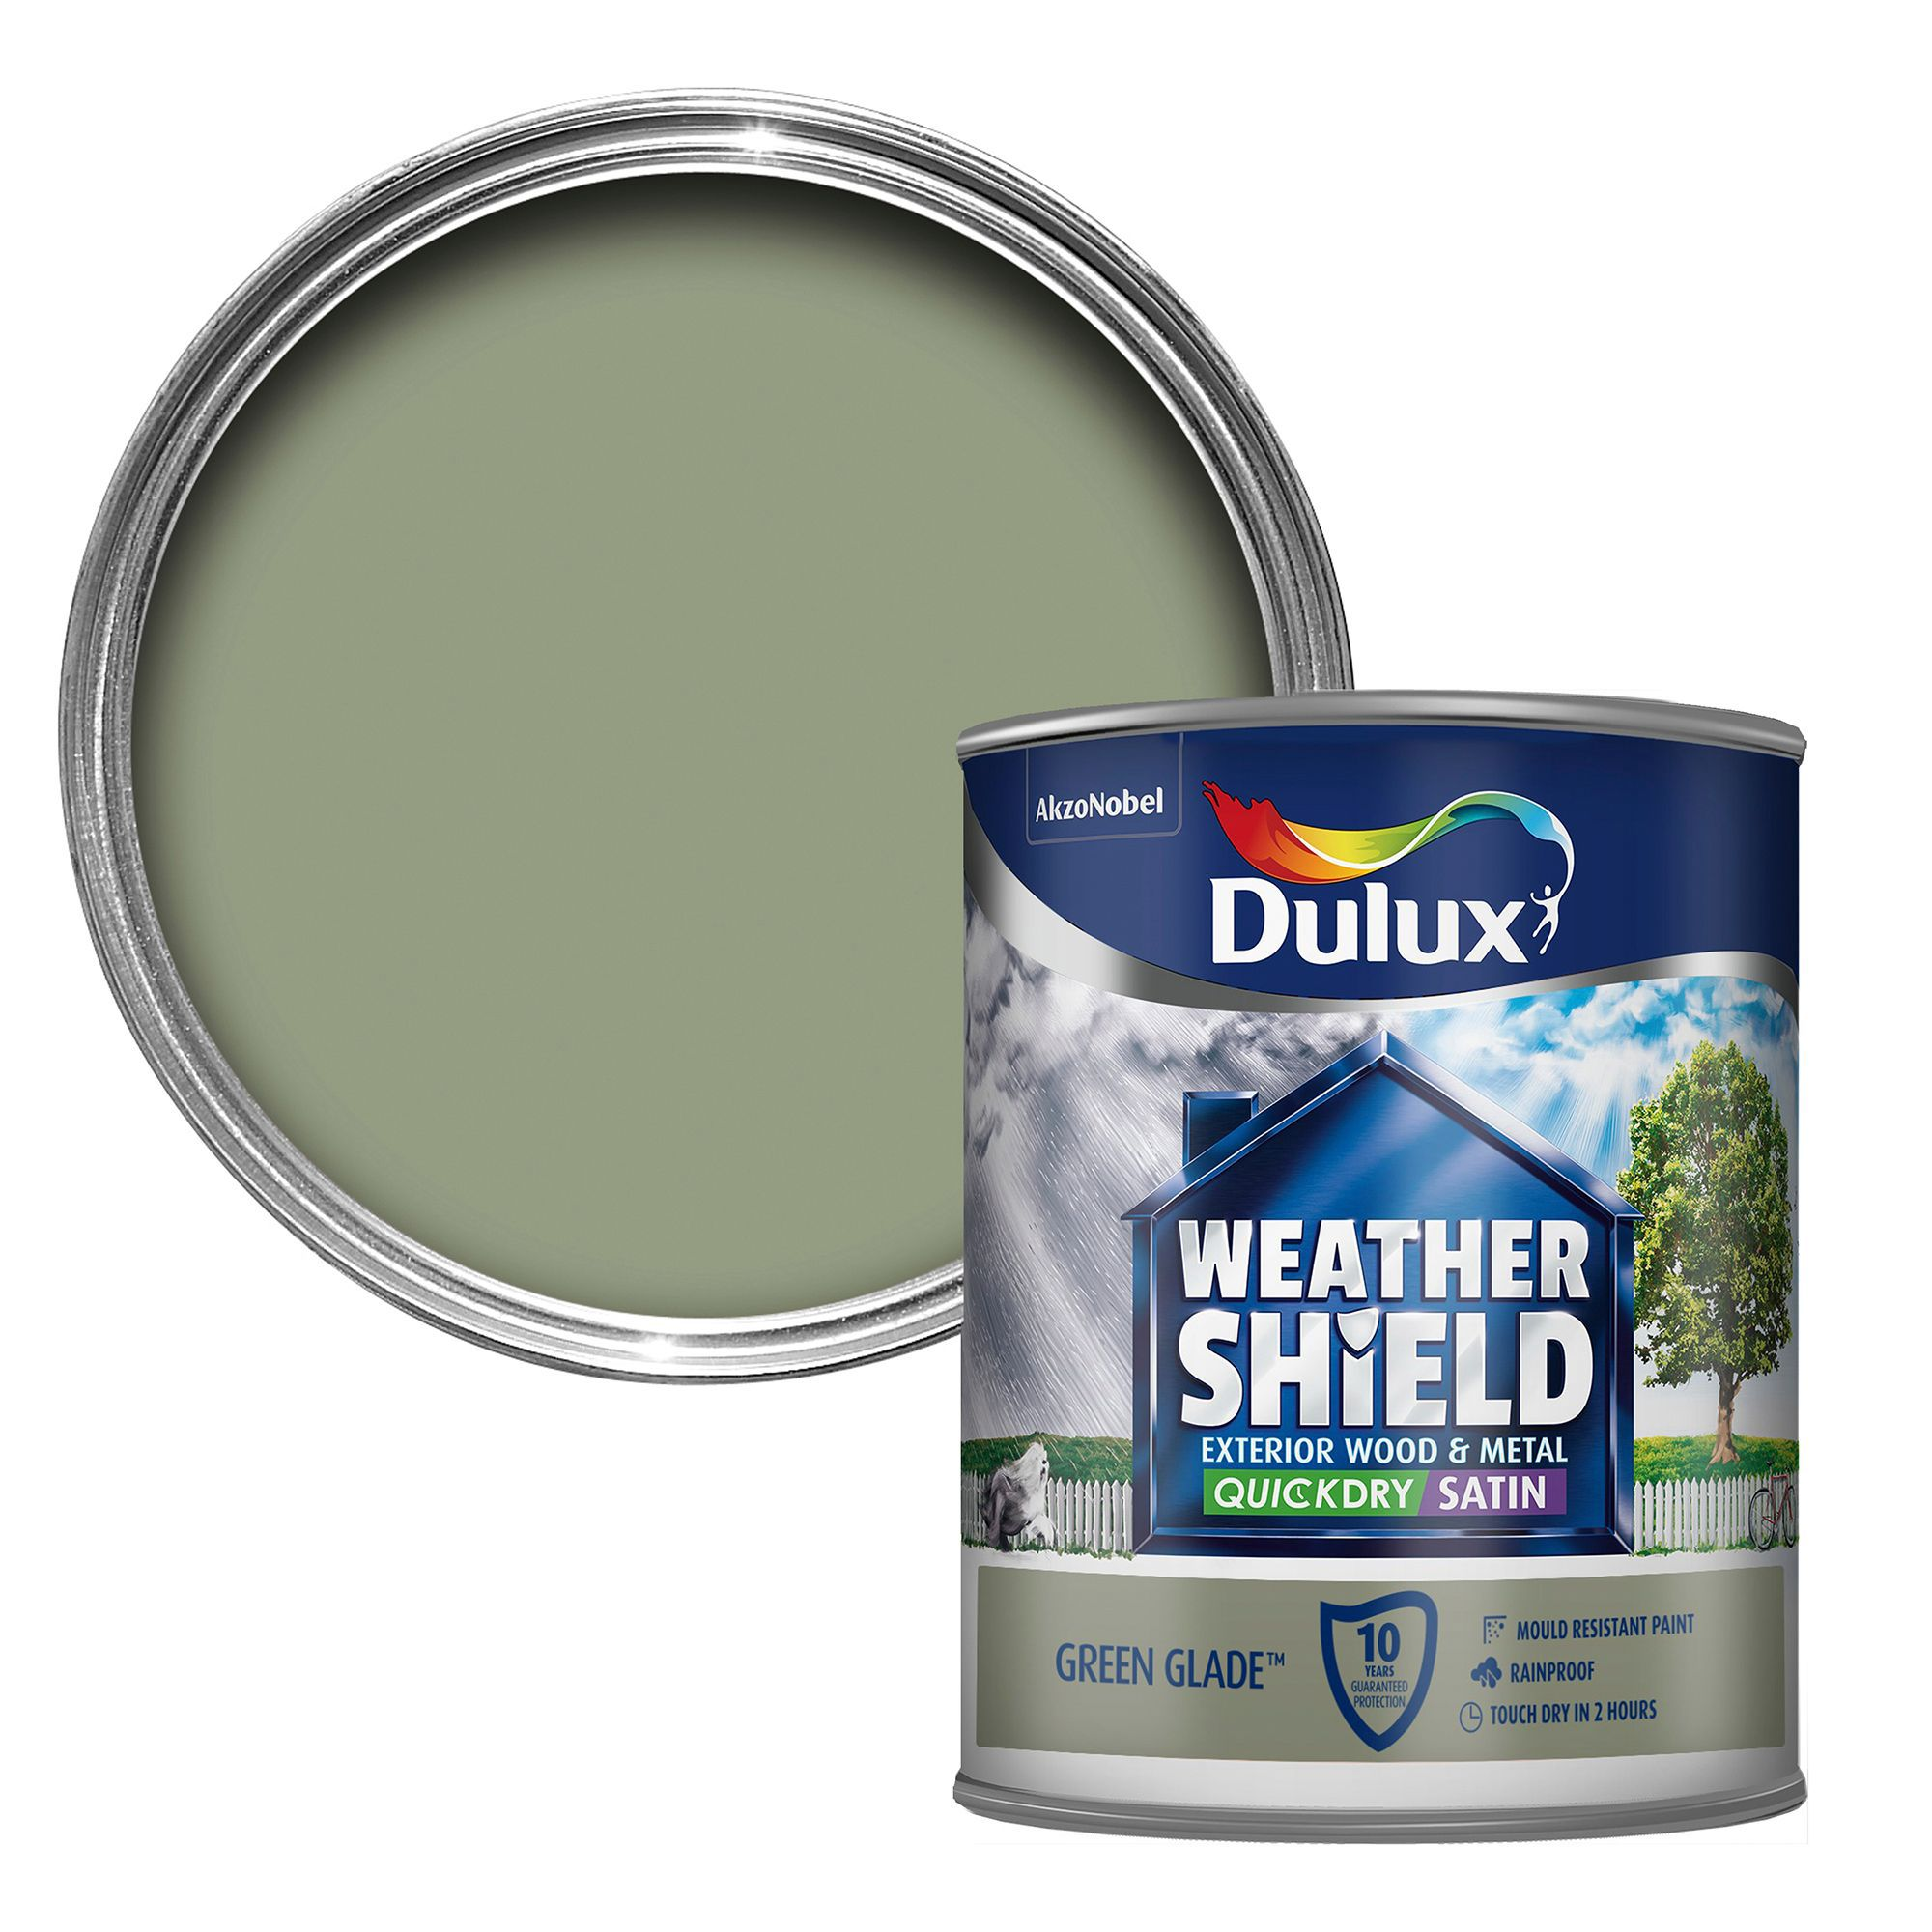 Dulux weathershield exterior glade green satin wood metal paint 750ml departments diy at b q - Dulux exterior gloss paint style ...